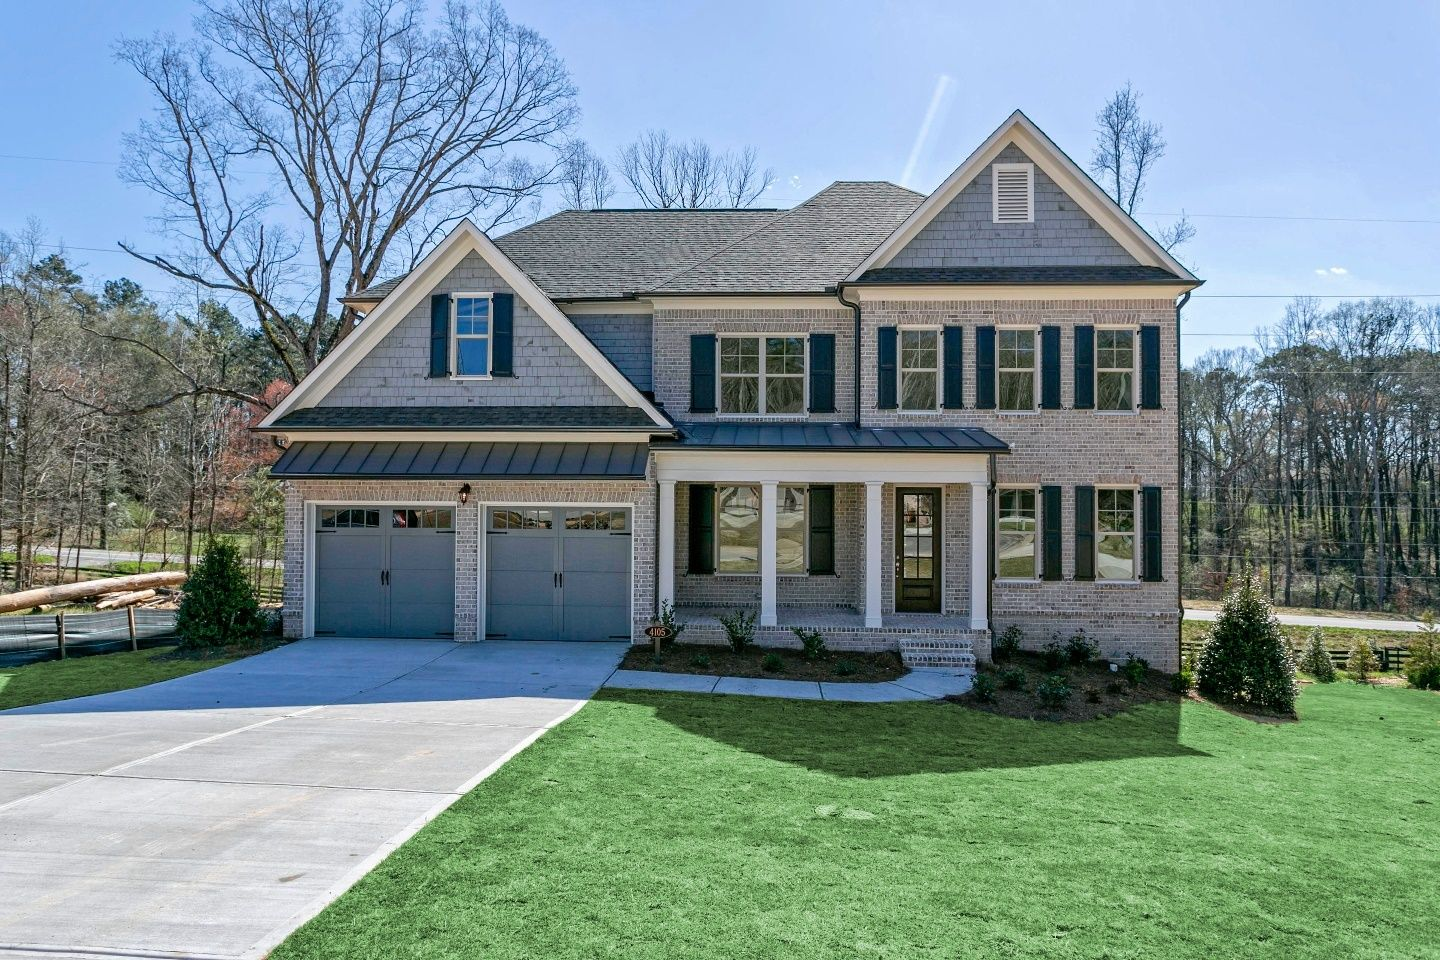 Real Estate at 4310 Brookview Drive, Cumming in Forsyth County, GA 30040